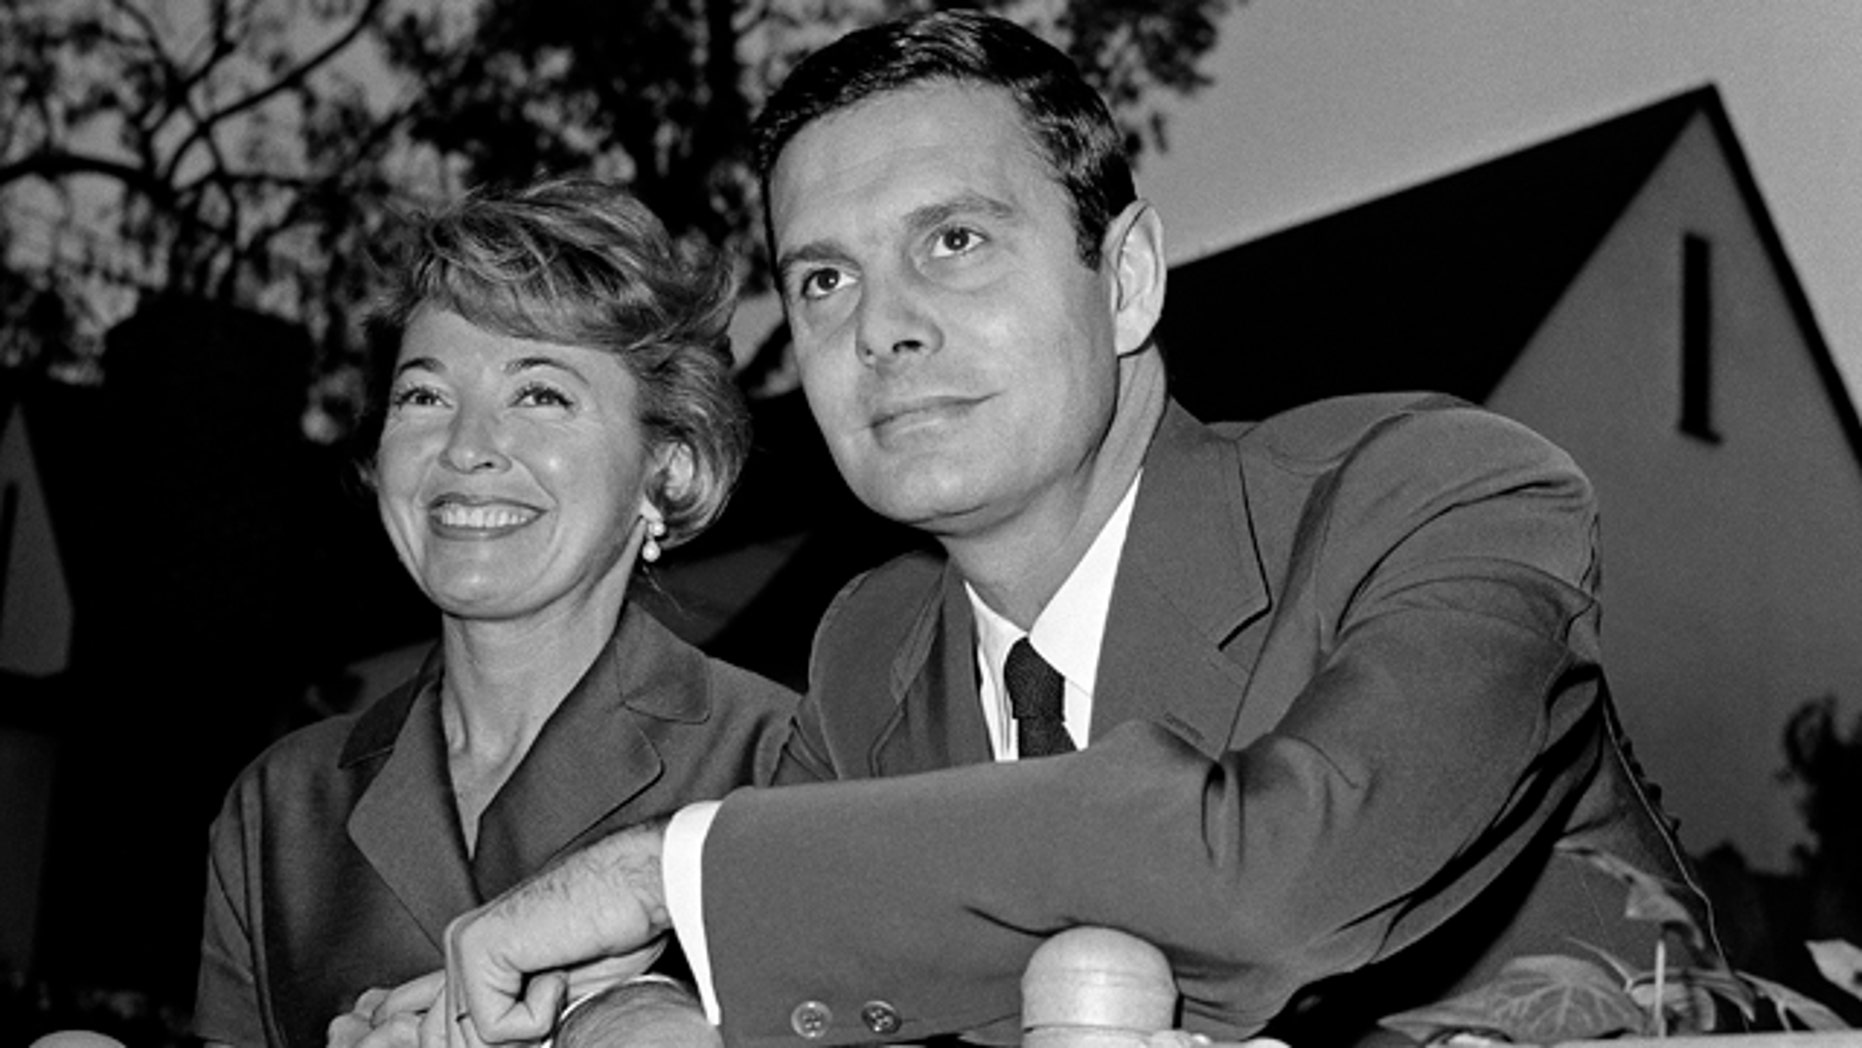 """In this Jan. 5, 1959 file photo, actor Louis Jourdan and his wife Berthe Fredrique pose at their home in Beverly Hills, Calif. Jourdan, the dashingly handsome Frenchman who starred in """"Gigi,"""" ''Can-Can,"""" ''Three Coins in the Fountain"""" and other American movies, has died on Saturday, Feb. 14, 2015. He was 93. (AP Photo, File)"""